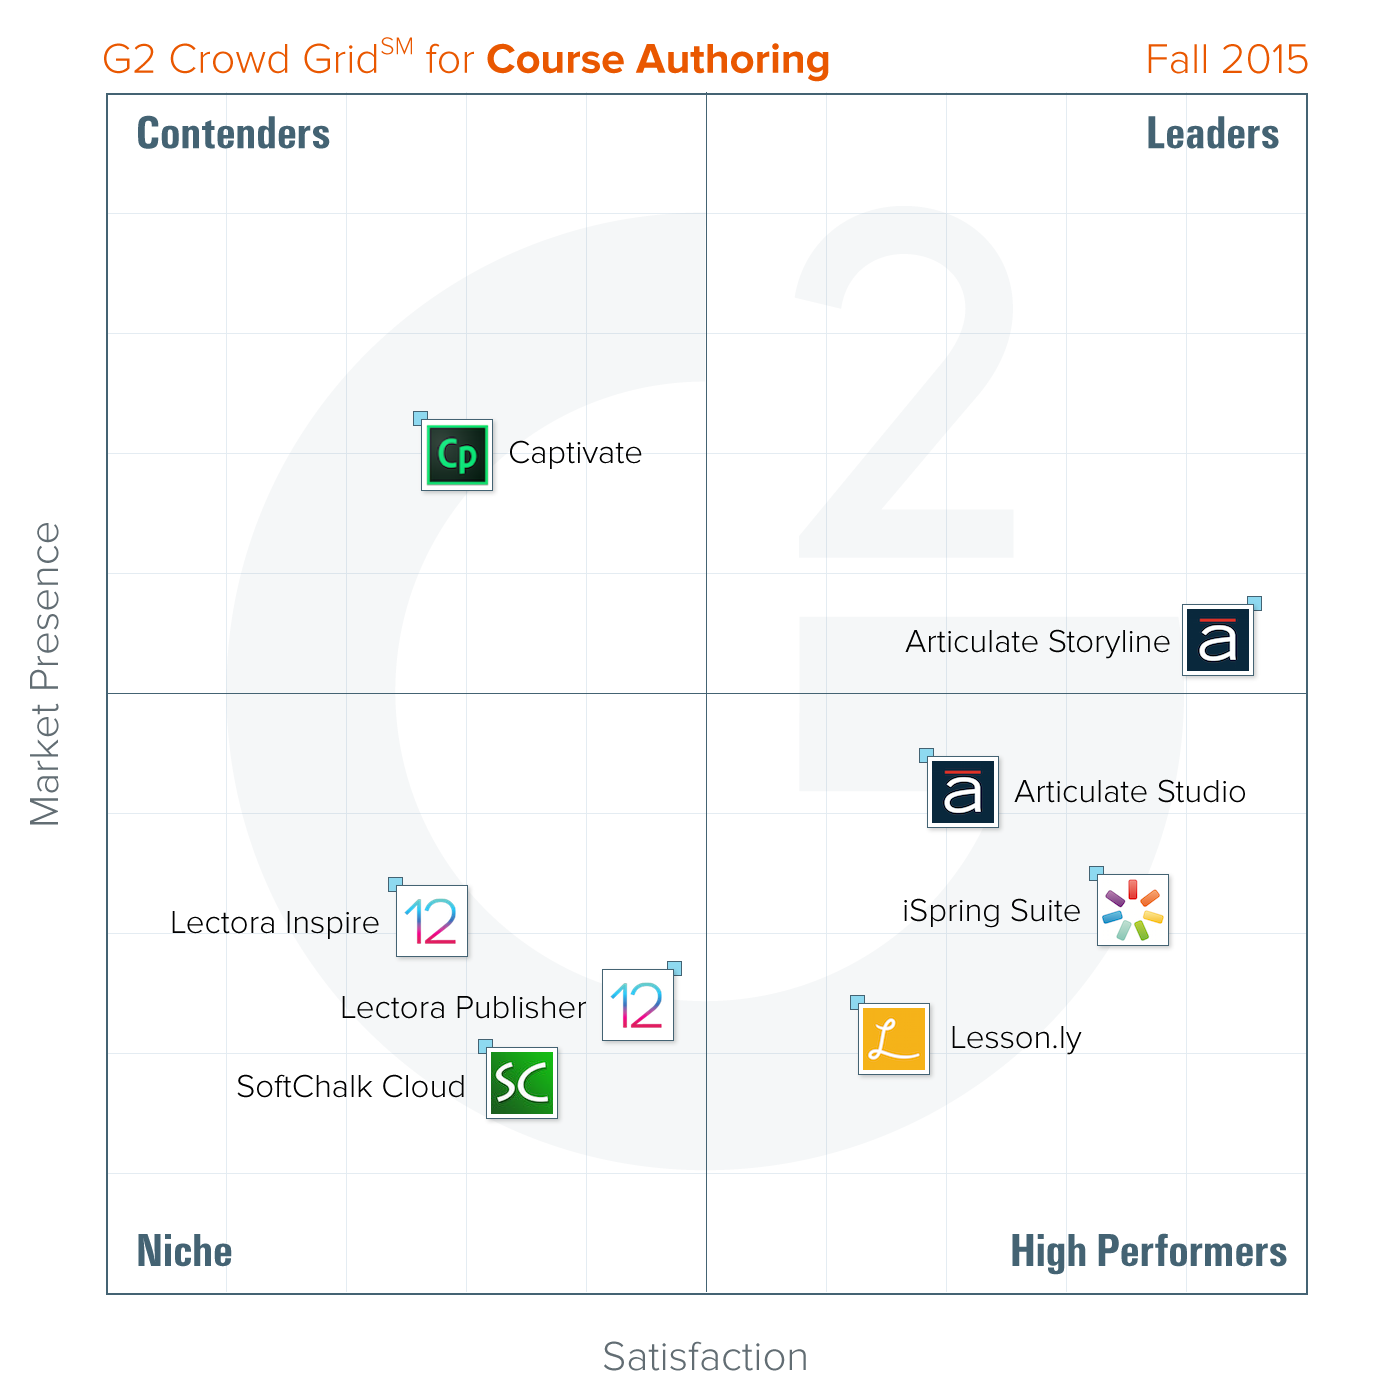 Course authoring fall 2015 grid